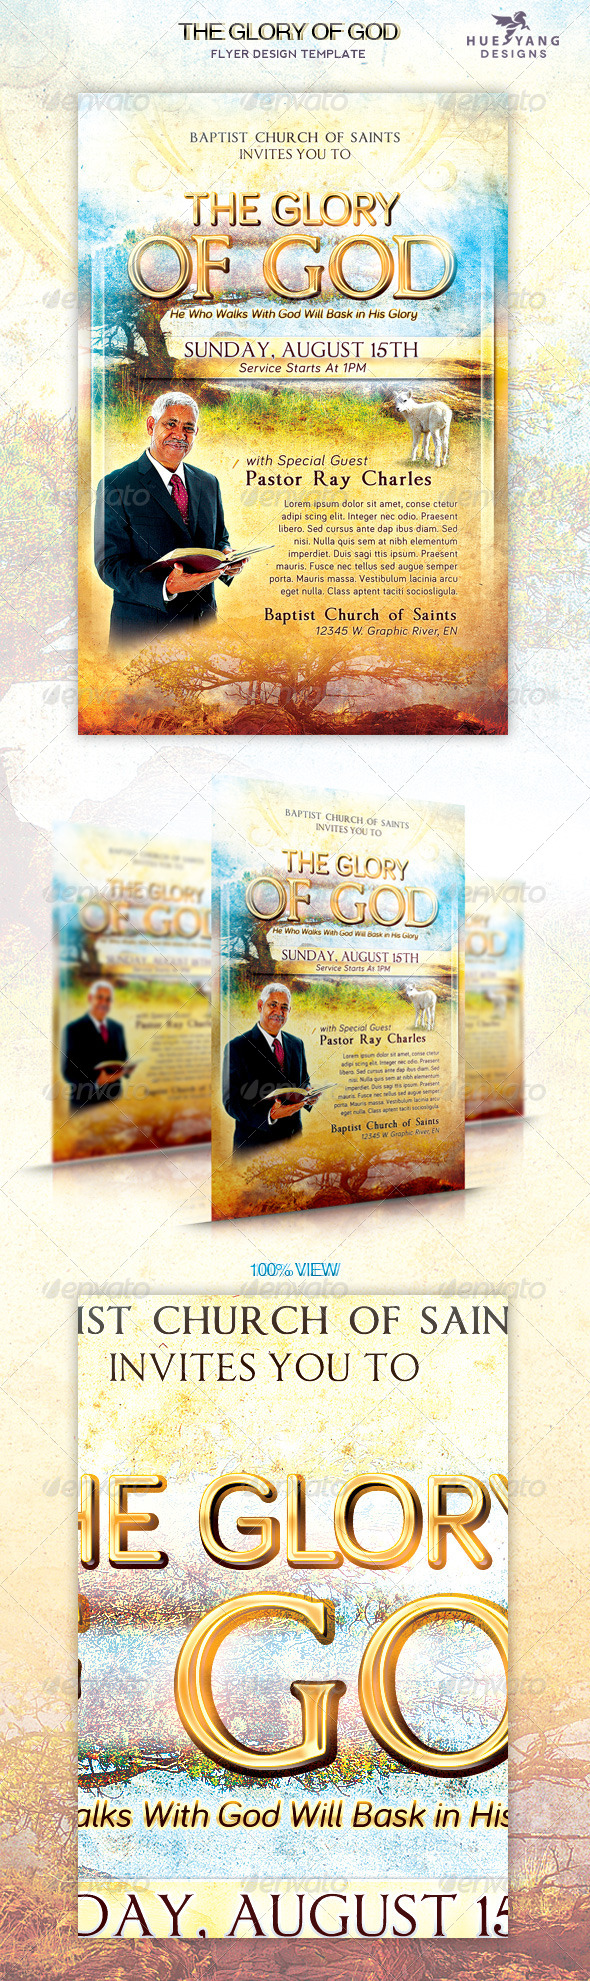 Glory of God Church Flyer - Church Flyers